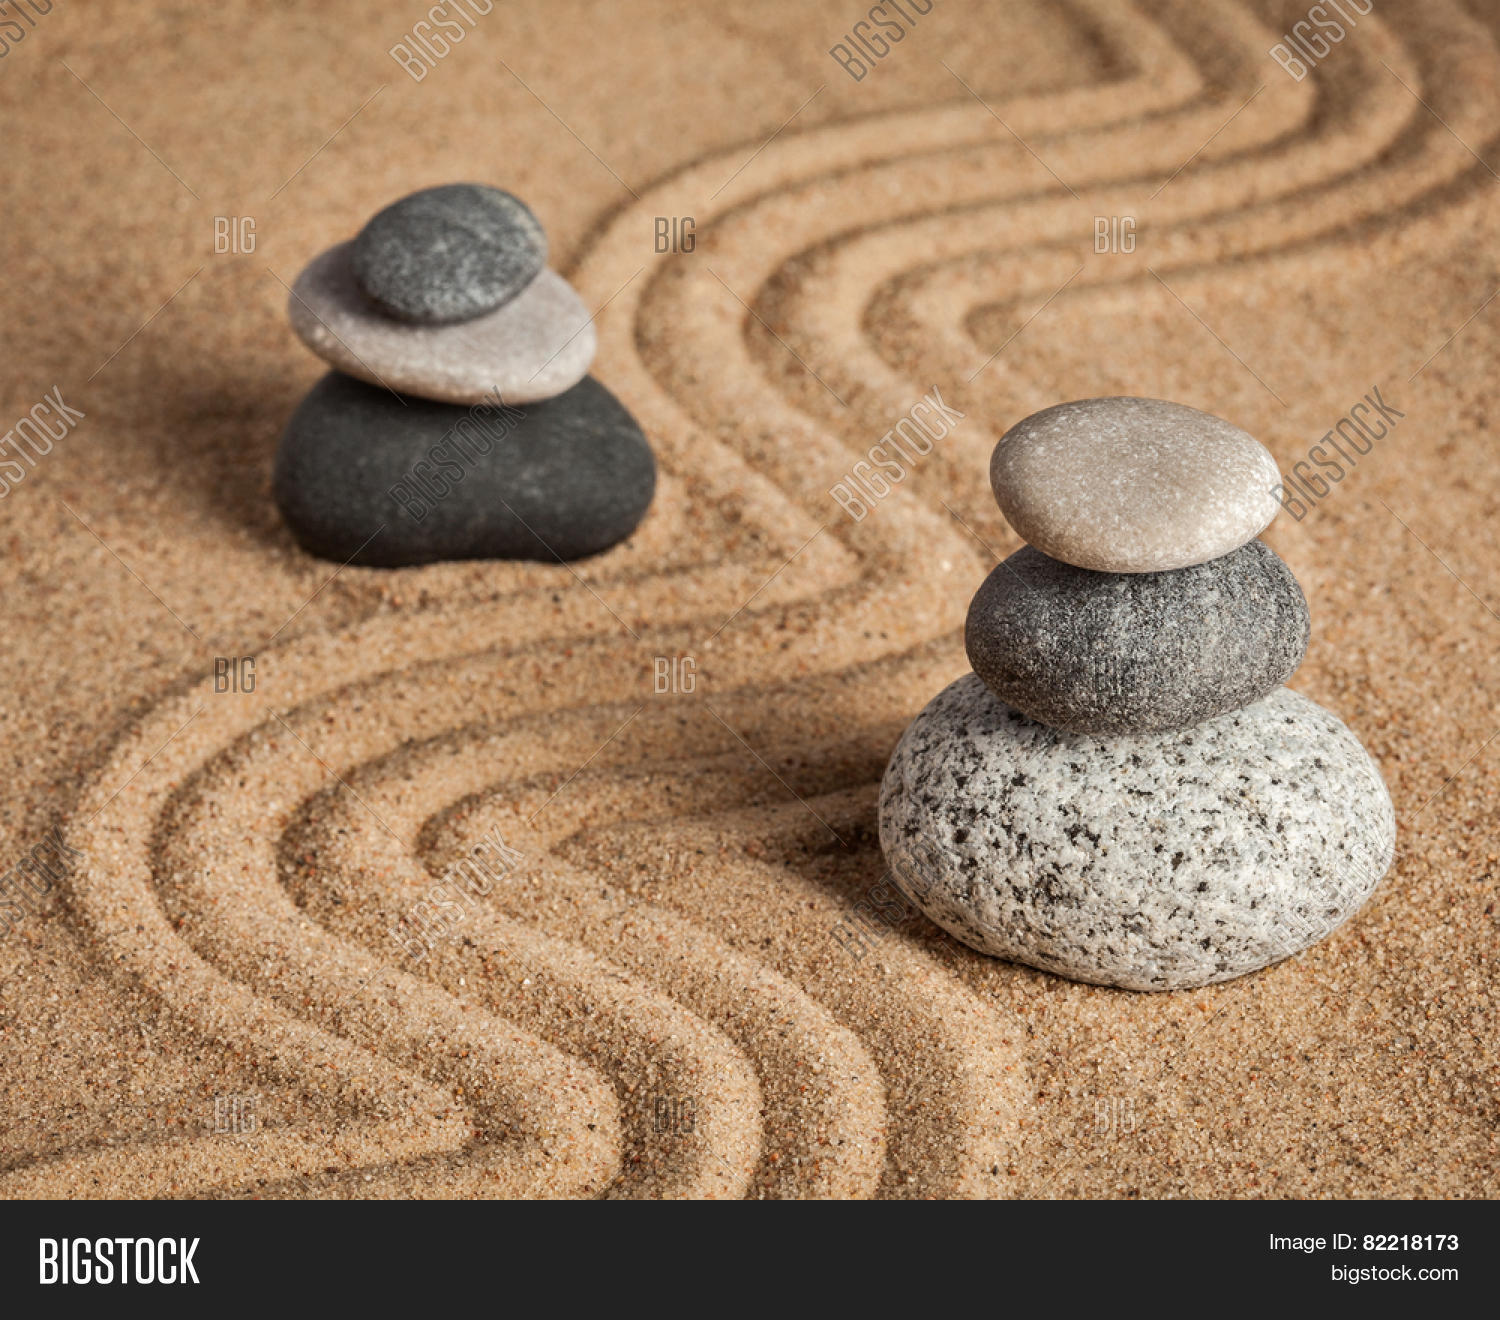 Japanese Zen Stone Garden - Image & Photo | Bigstock